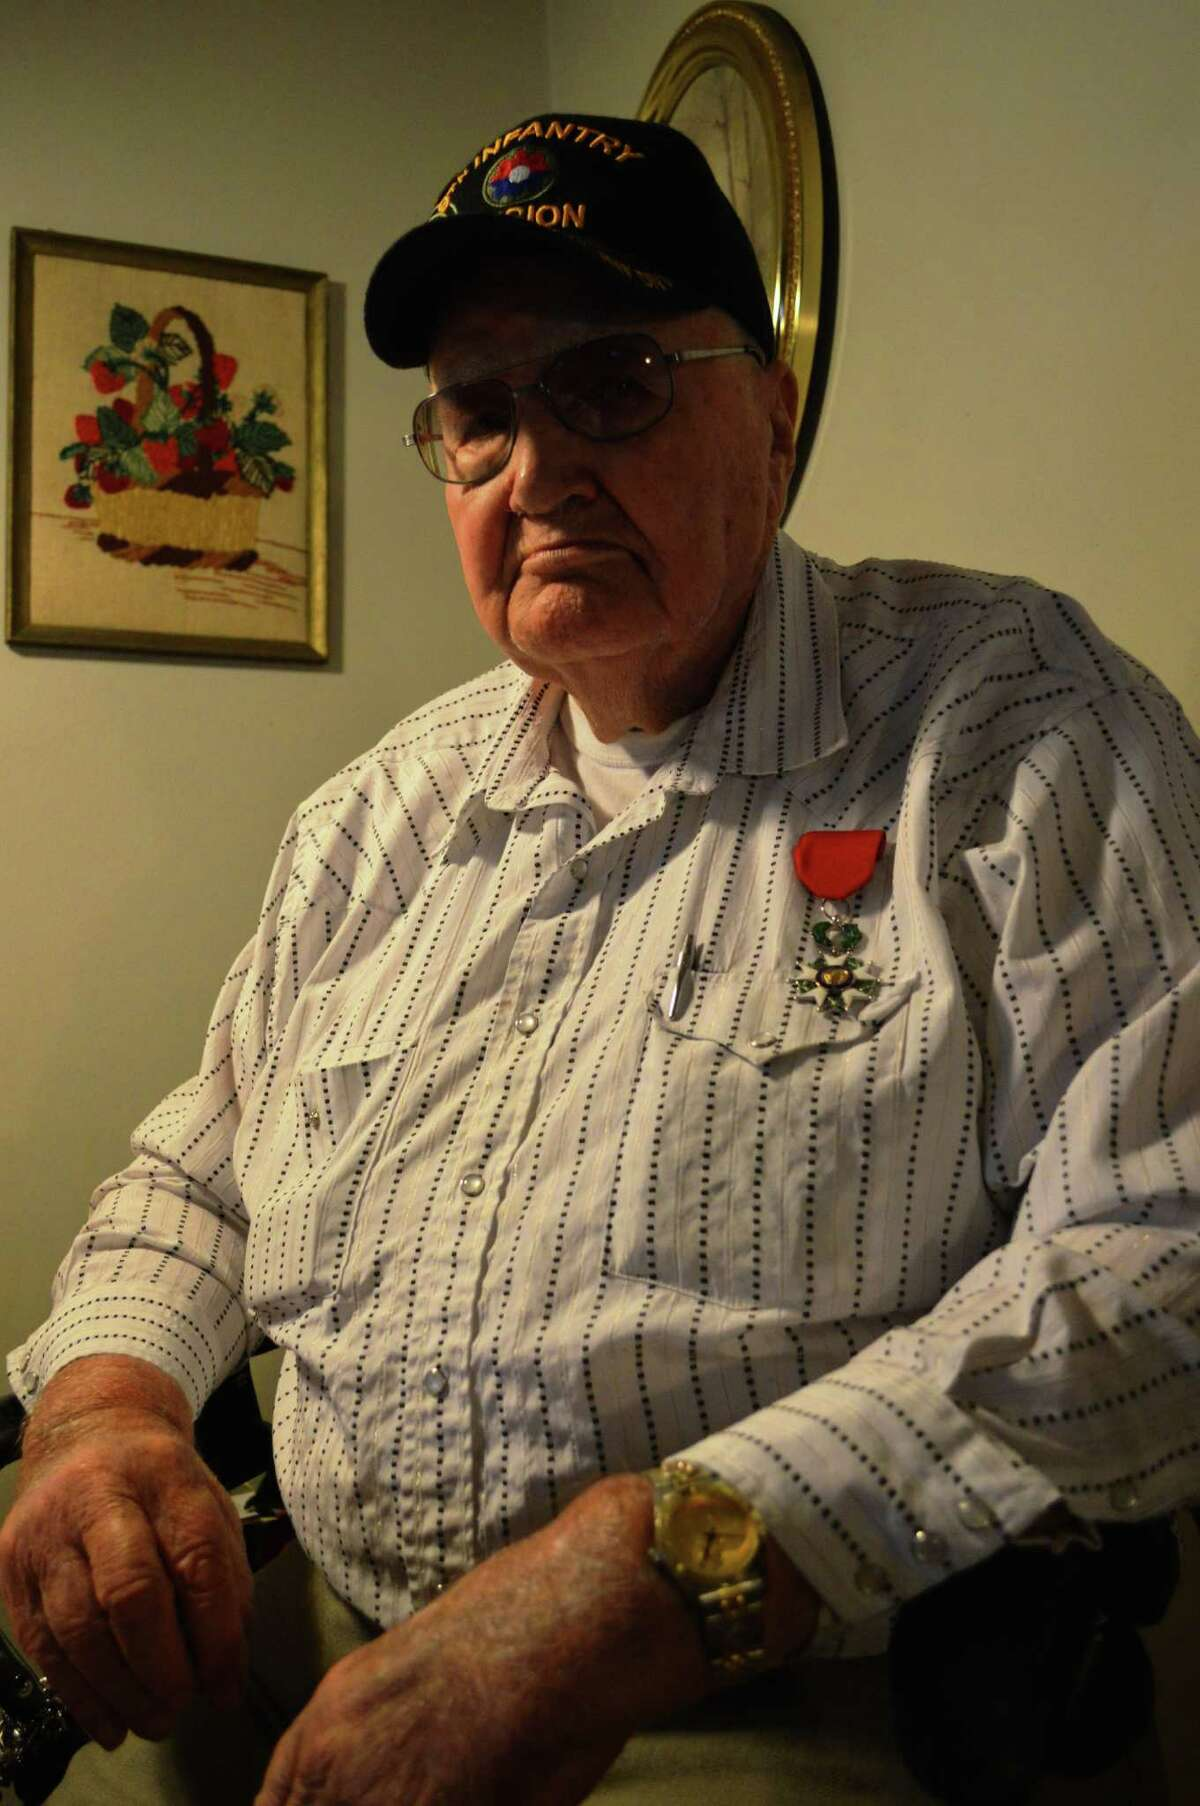 Arnold Watson fought in World War II and was part of Operation Overlord.Arnold Watson fought in World War II and was part of Operation Overlord.